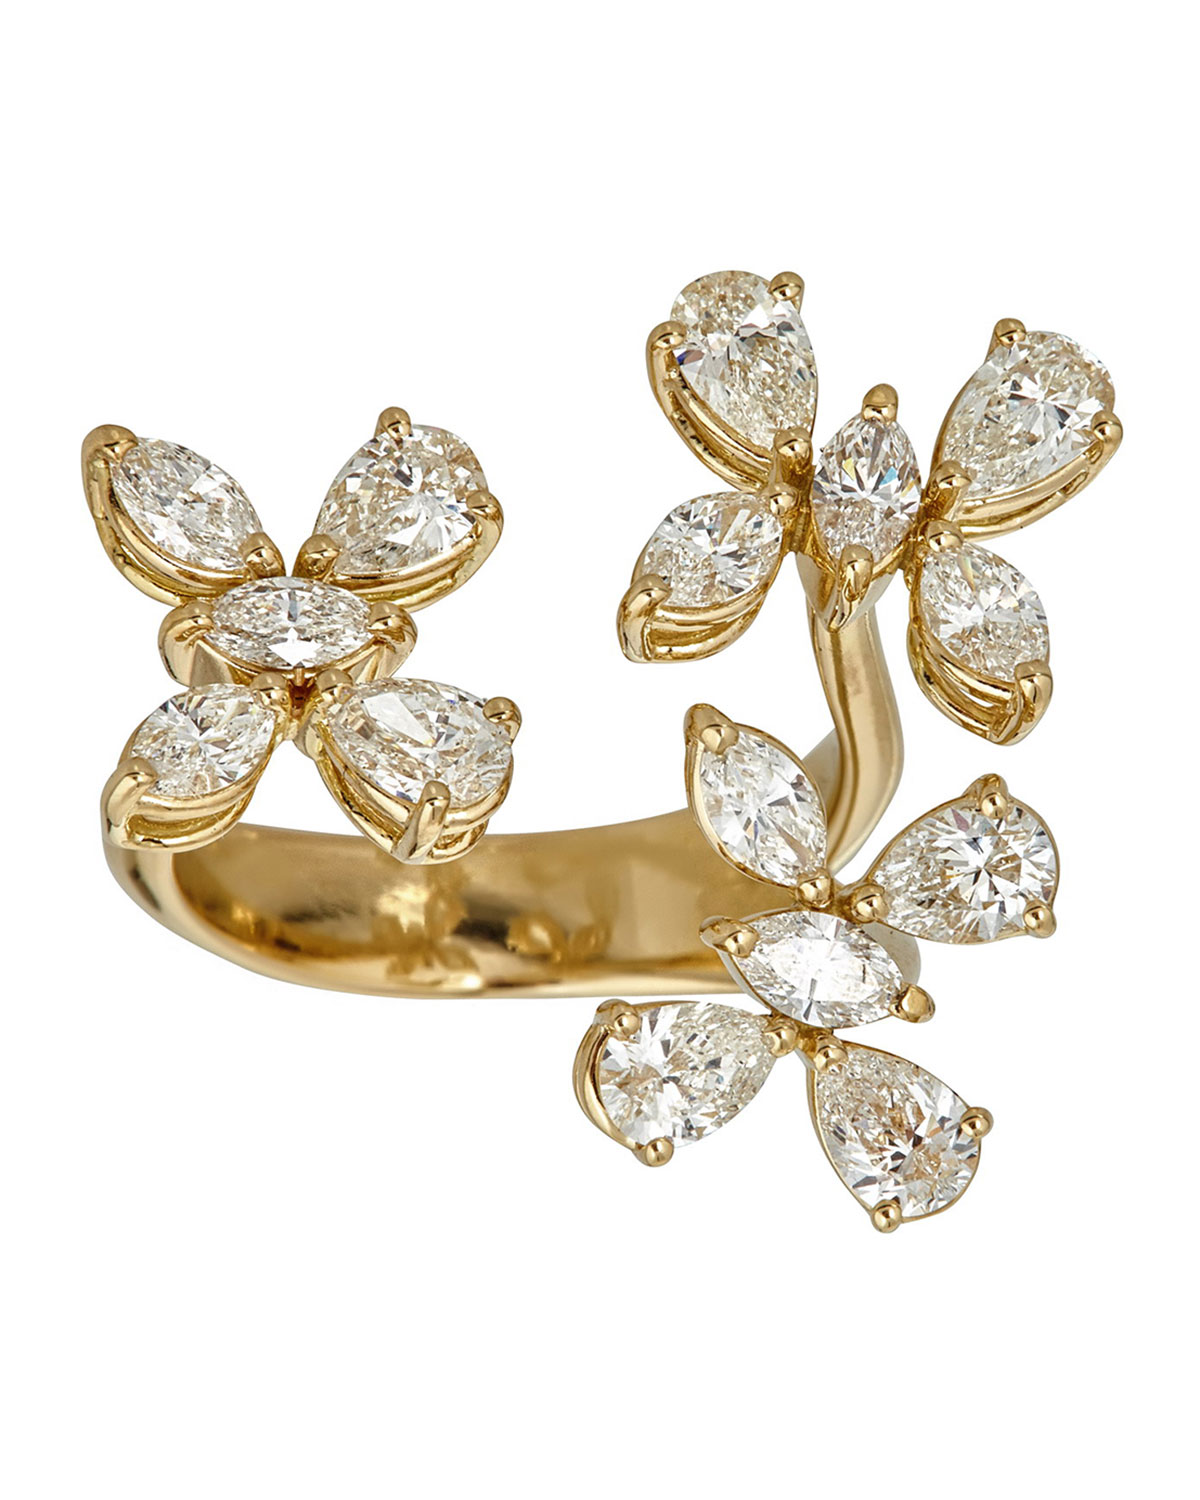 ZYDO Luminal 18K Gold 3-Flowers Diamond Ring, Size 7